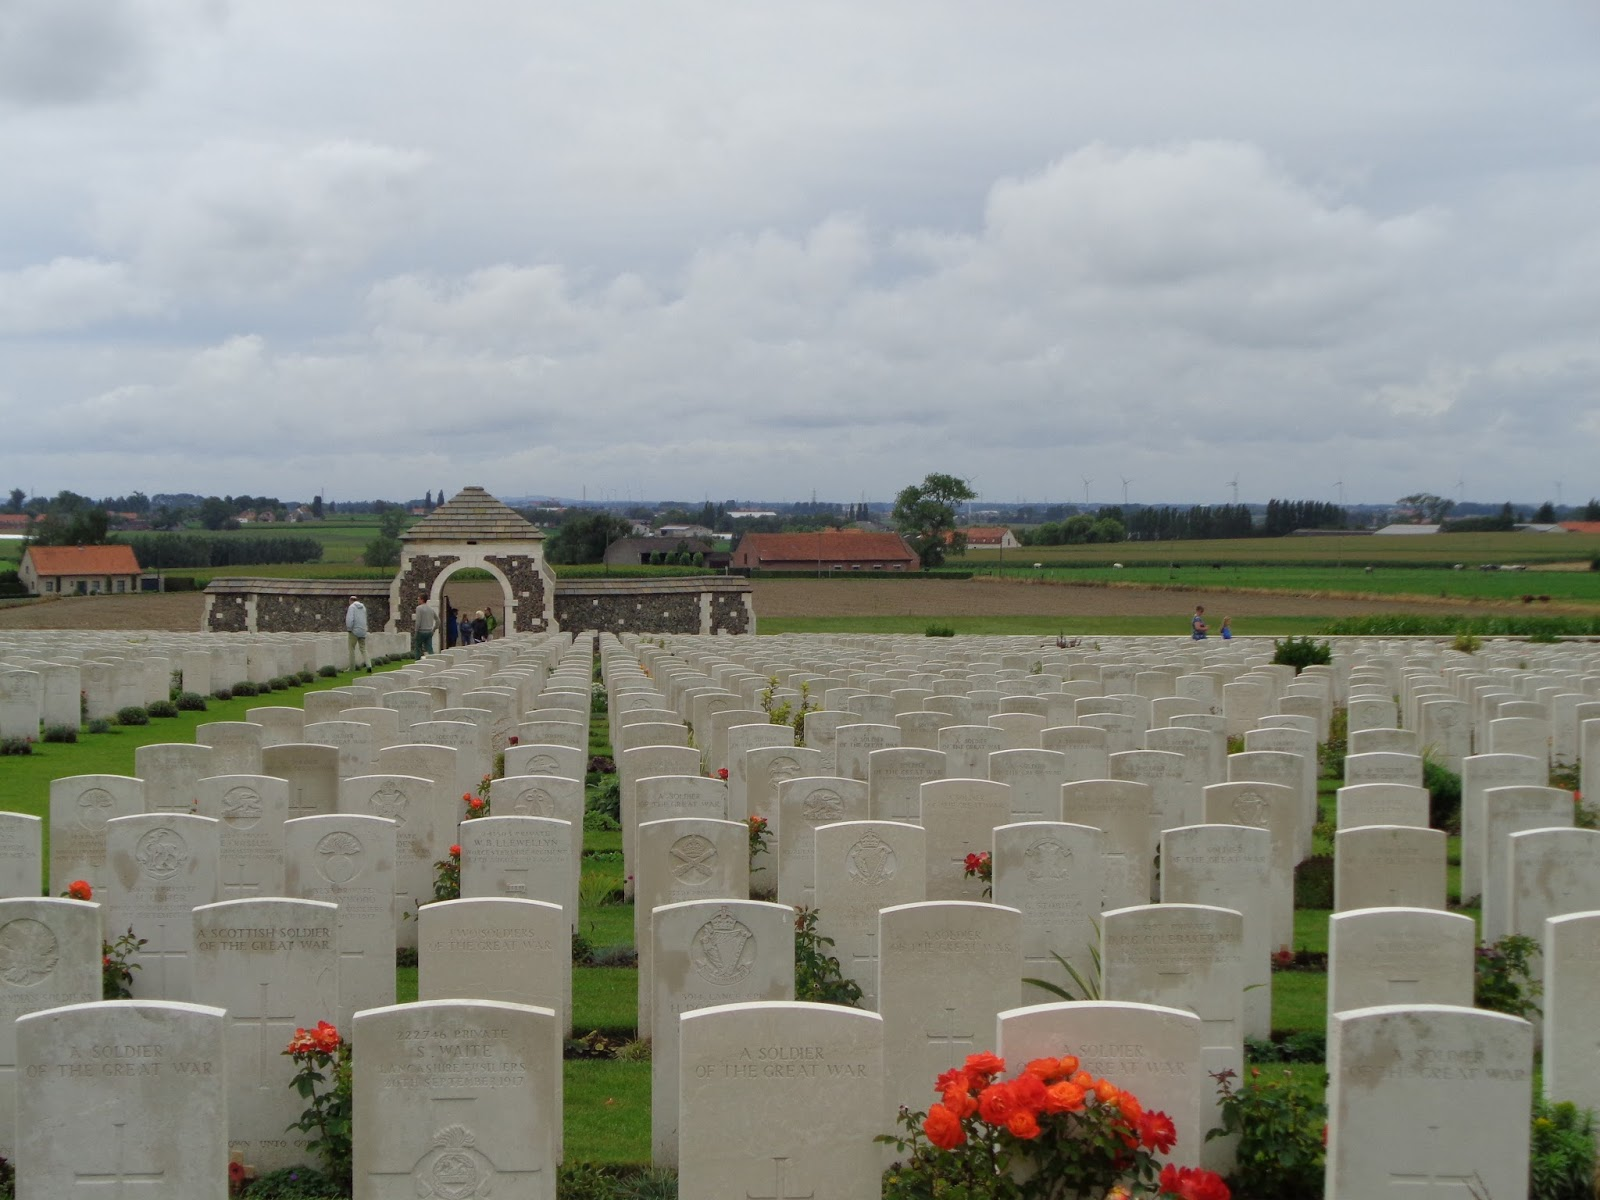 East of Cape Spear: In Flanders Fields the Poppies Blow